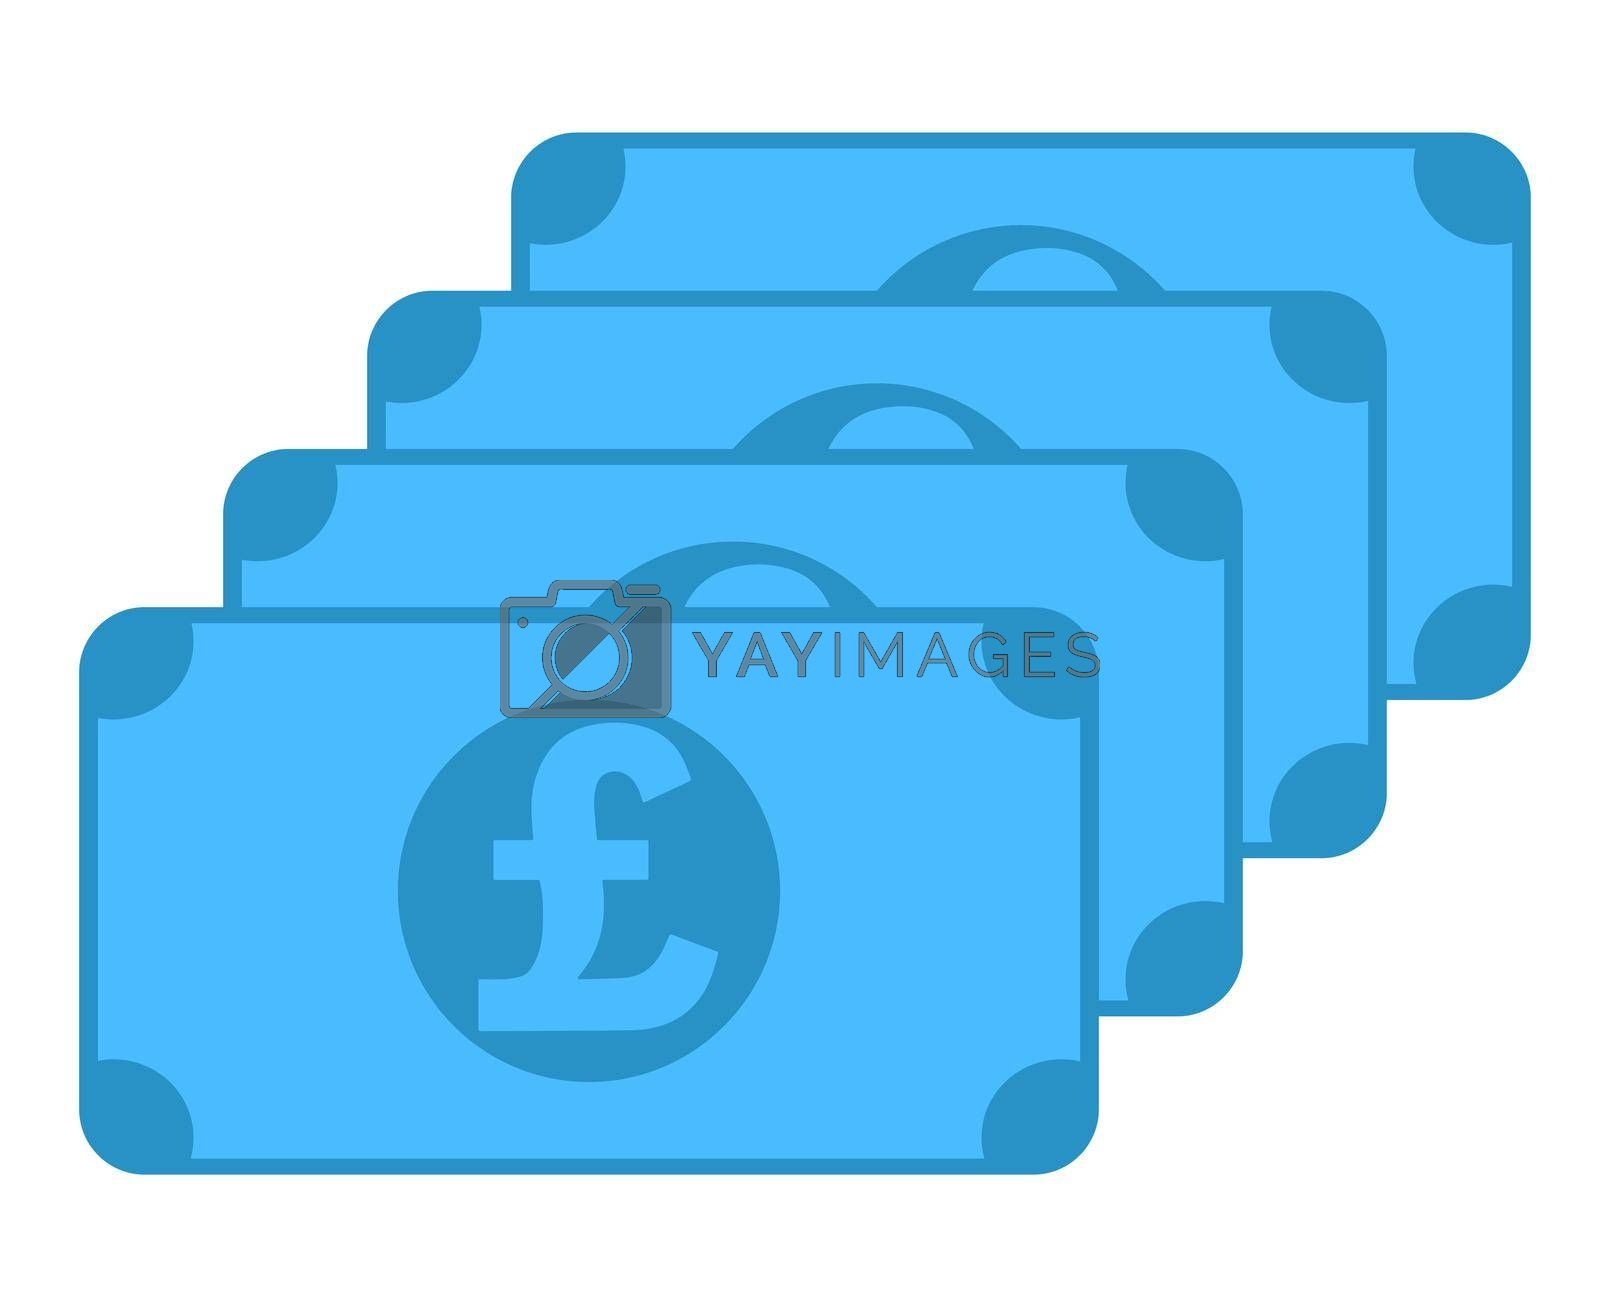 GBP banknote icon, symbol design, colored collection for web and mobile